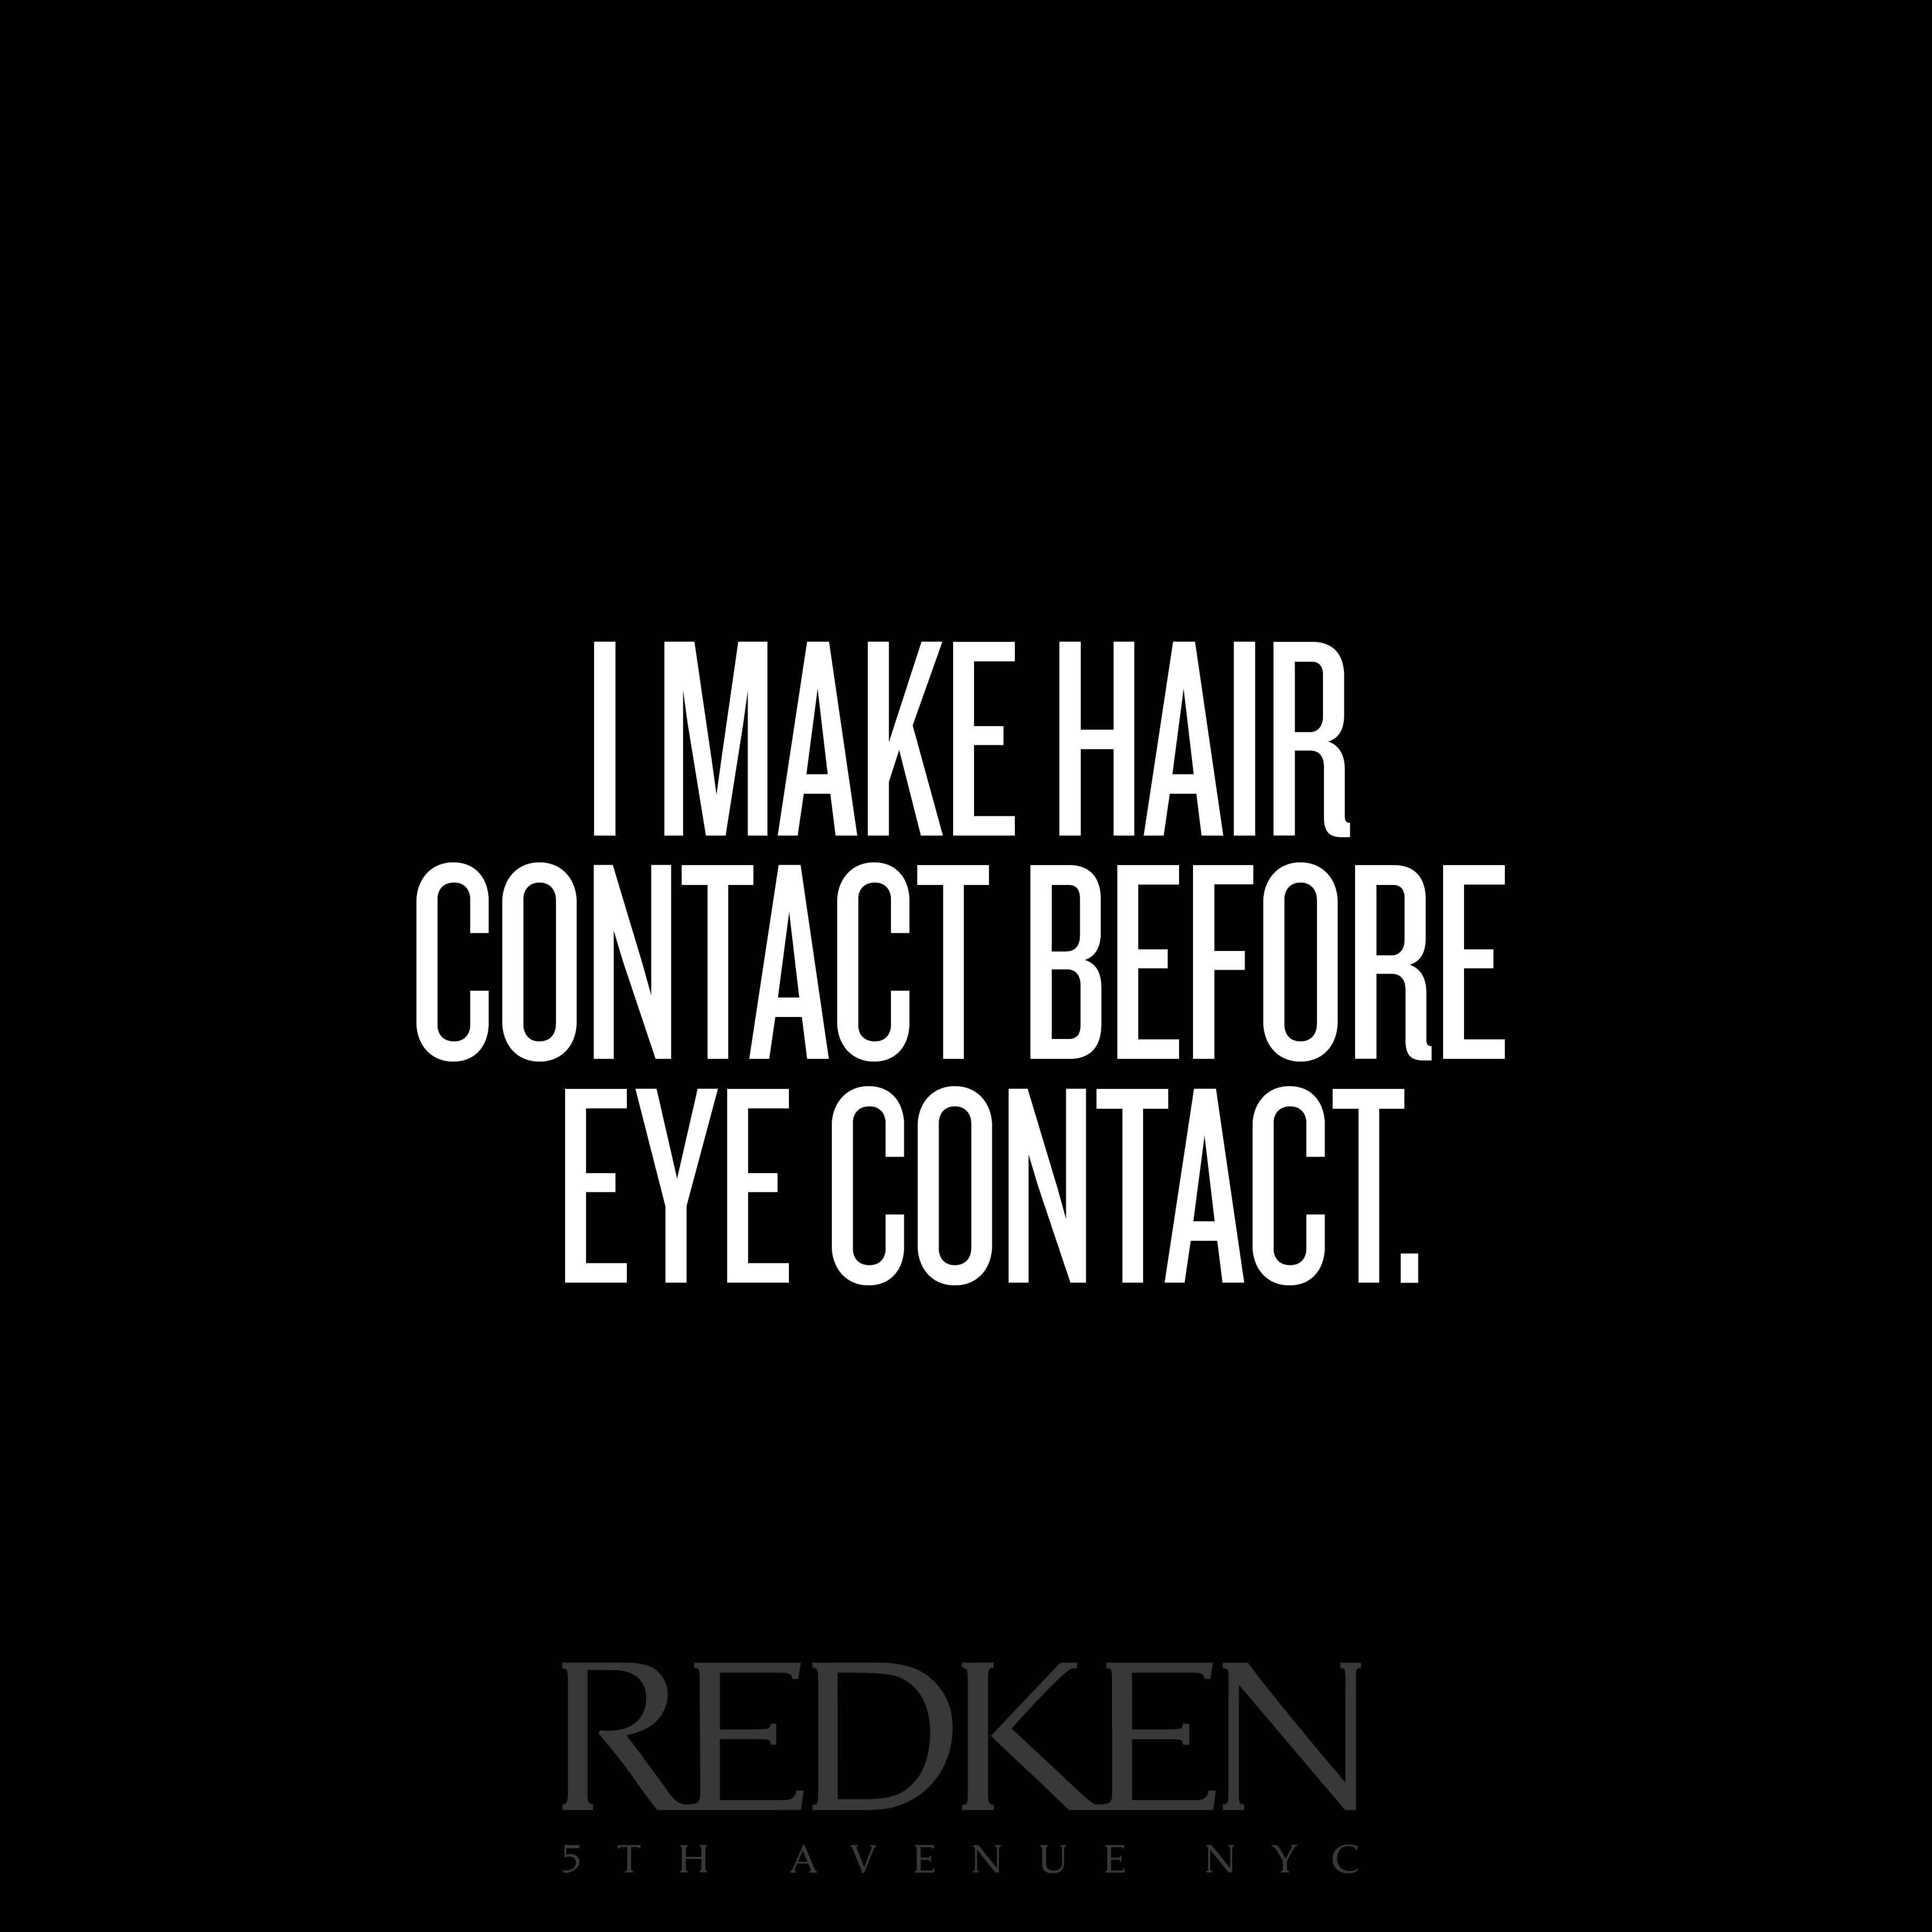 Trueee Hair Salon Quotes Hair Quotes Hairstylist Quotes